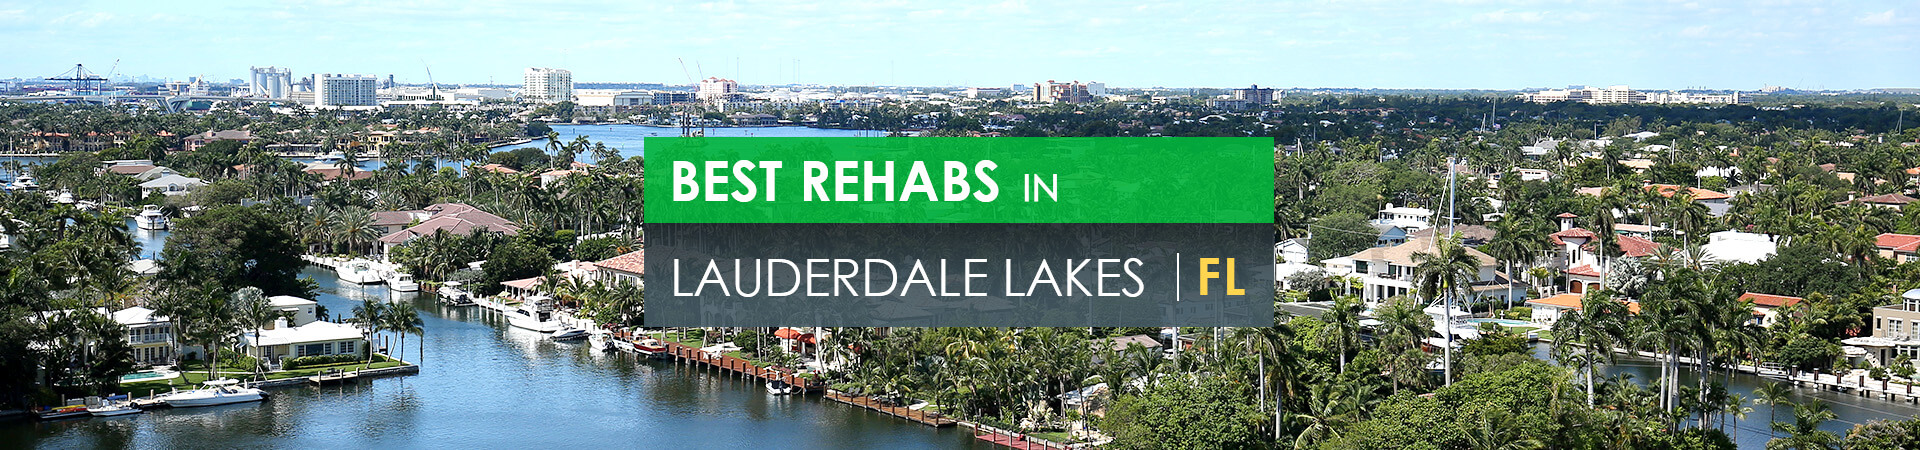 Best rehabs in Lauderdale Lakes, FL